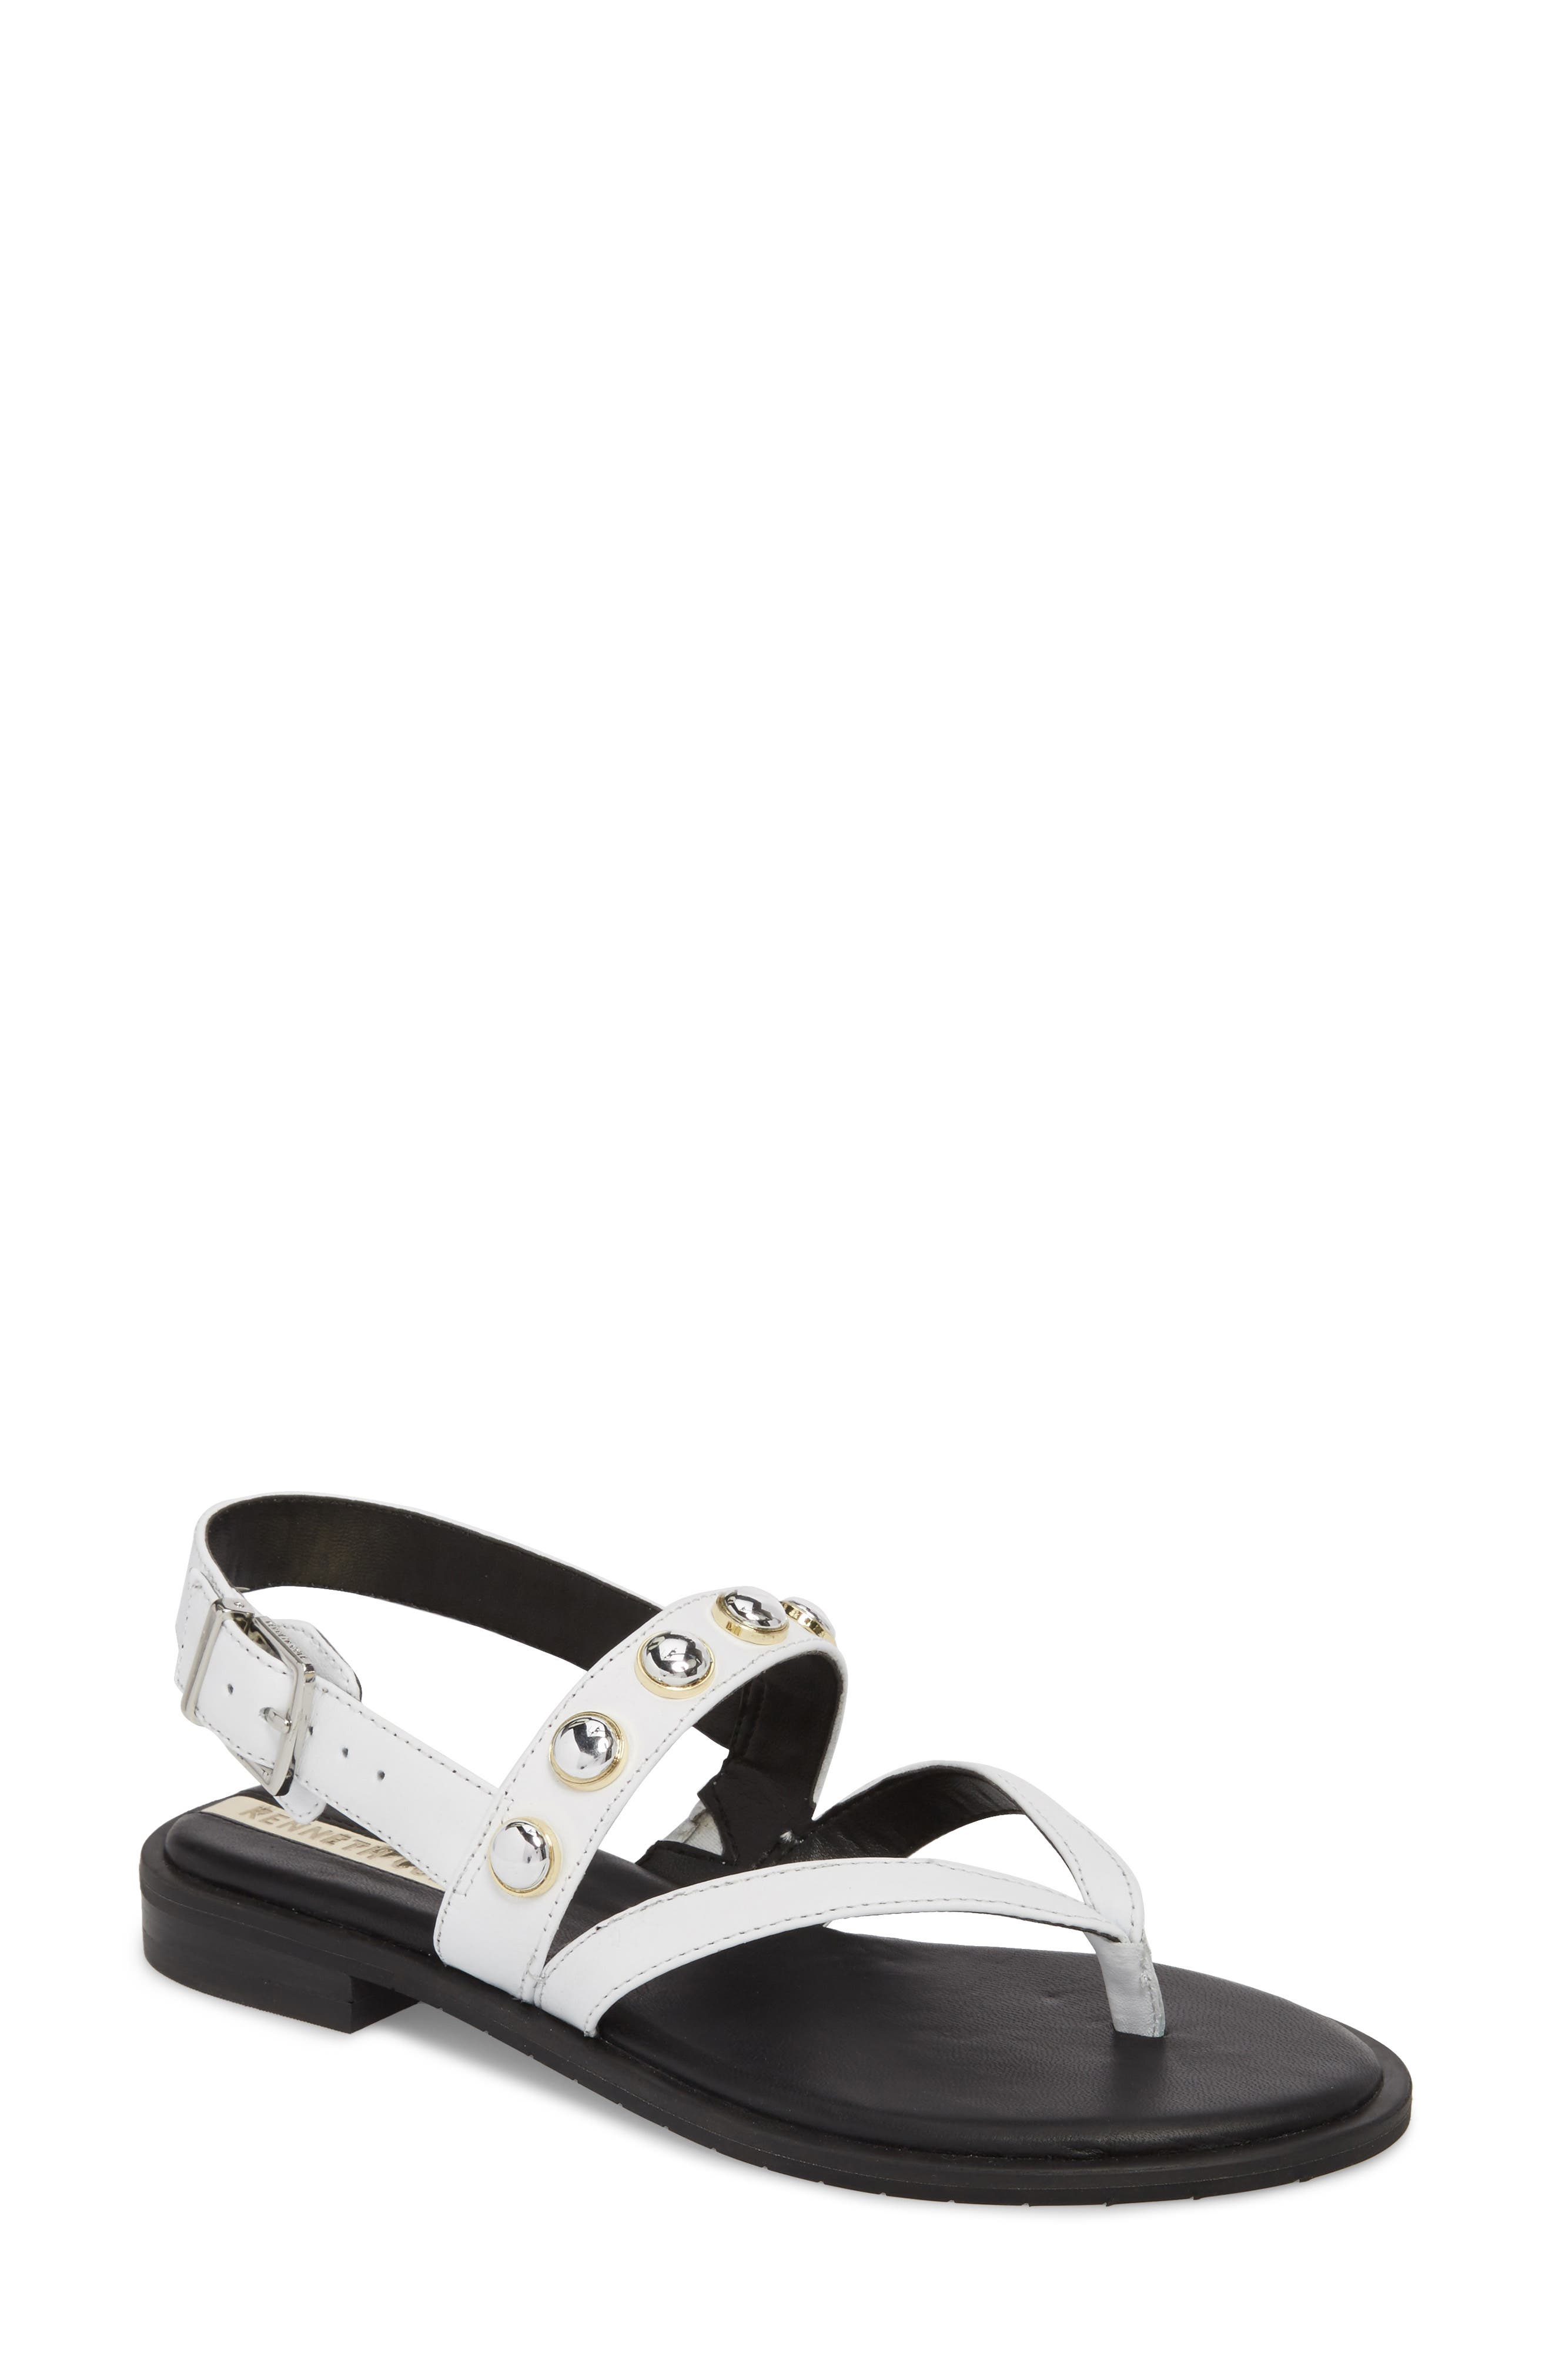 Tama Studded Sandal,                             Main thumbnail 1, color,                             White Leather